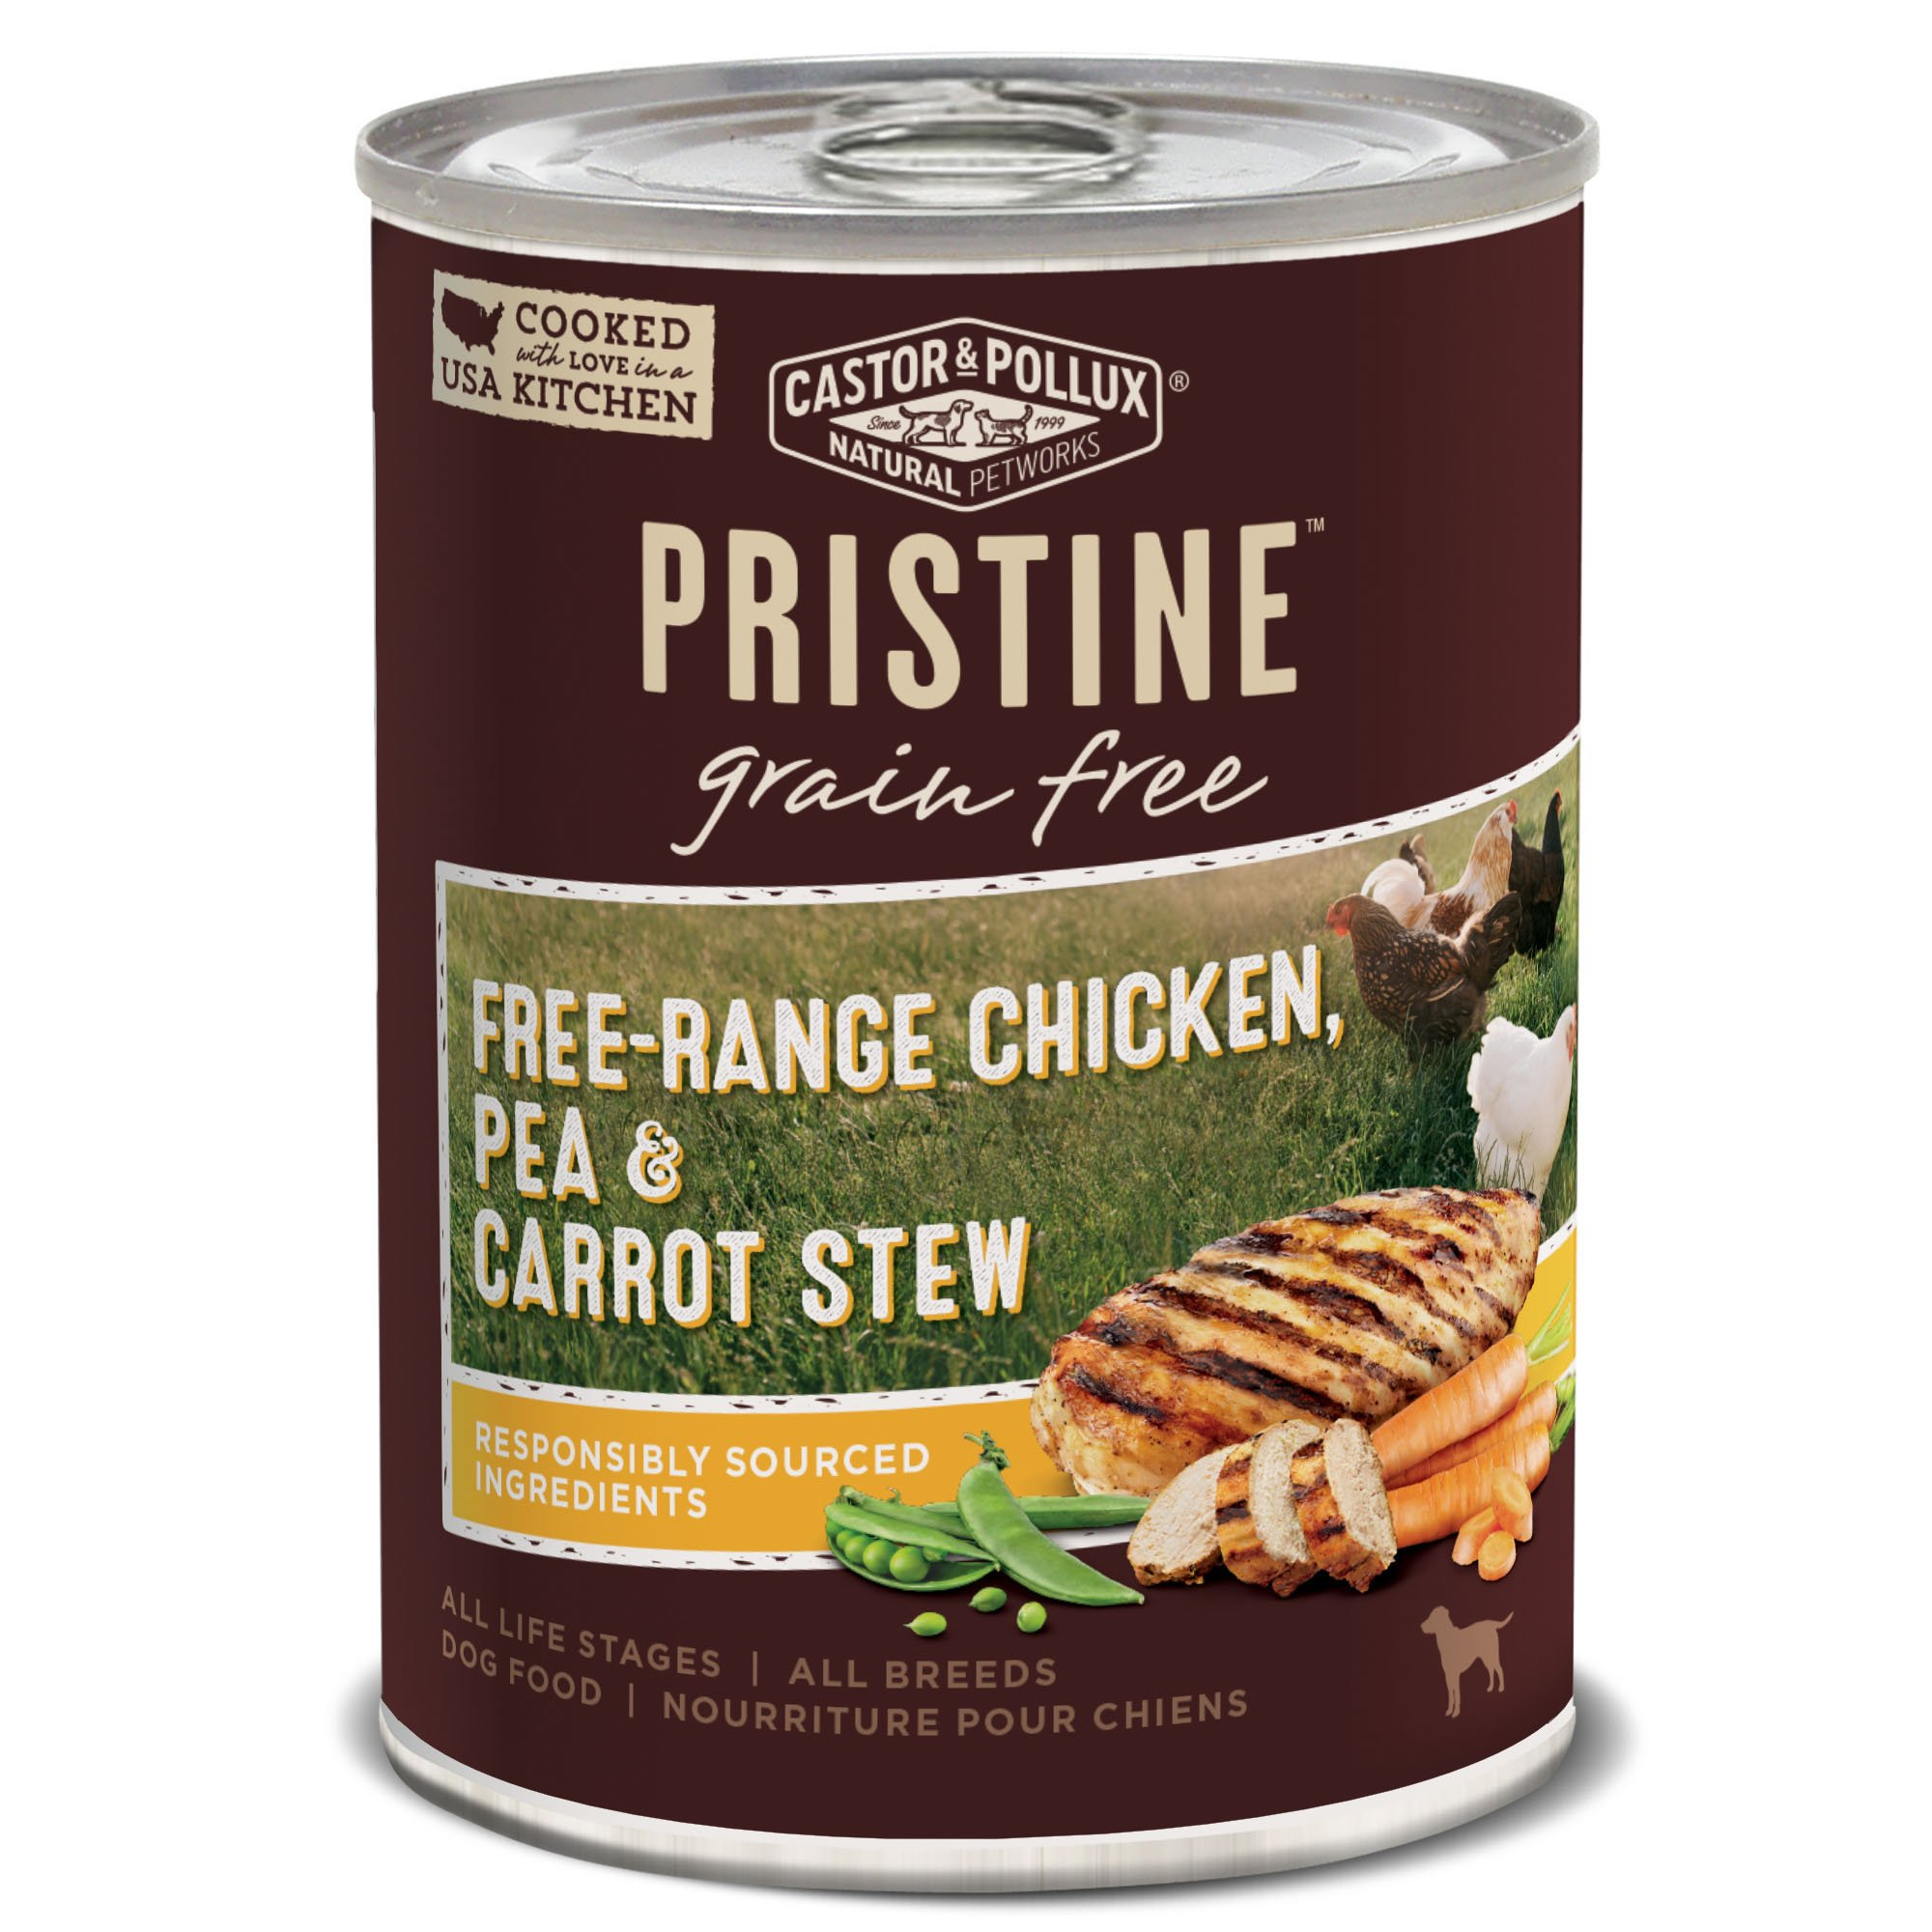 Castor & Pollux Pristine Free-Range Chicken Pea & Carrot Stew Wet Dog Food 12.7 Oz, 12 Count Case by Castor & Pollux